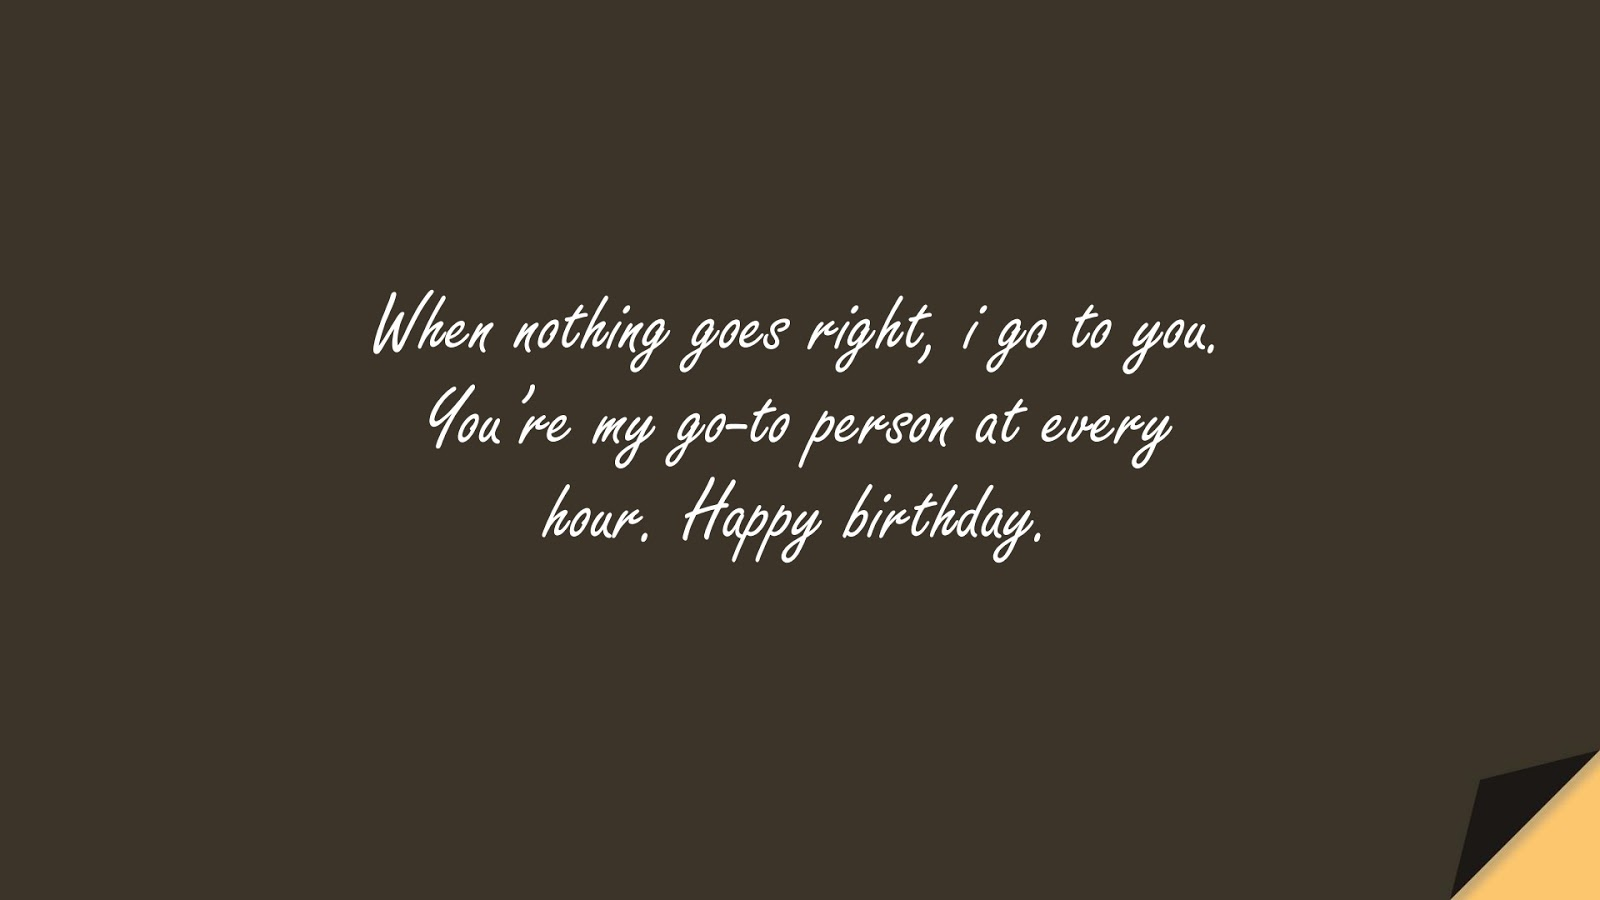 When nothing goes right, i go to you. You're my go-to person at every hour. Happy birthday.FALSE